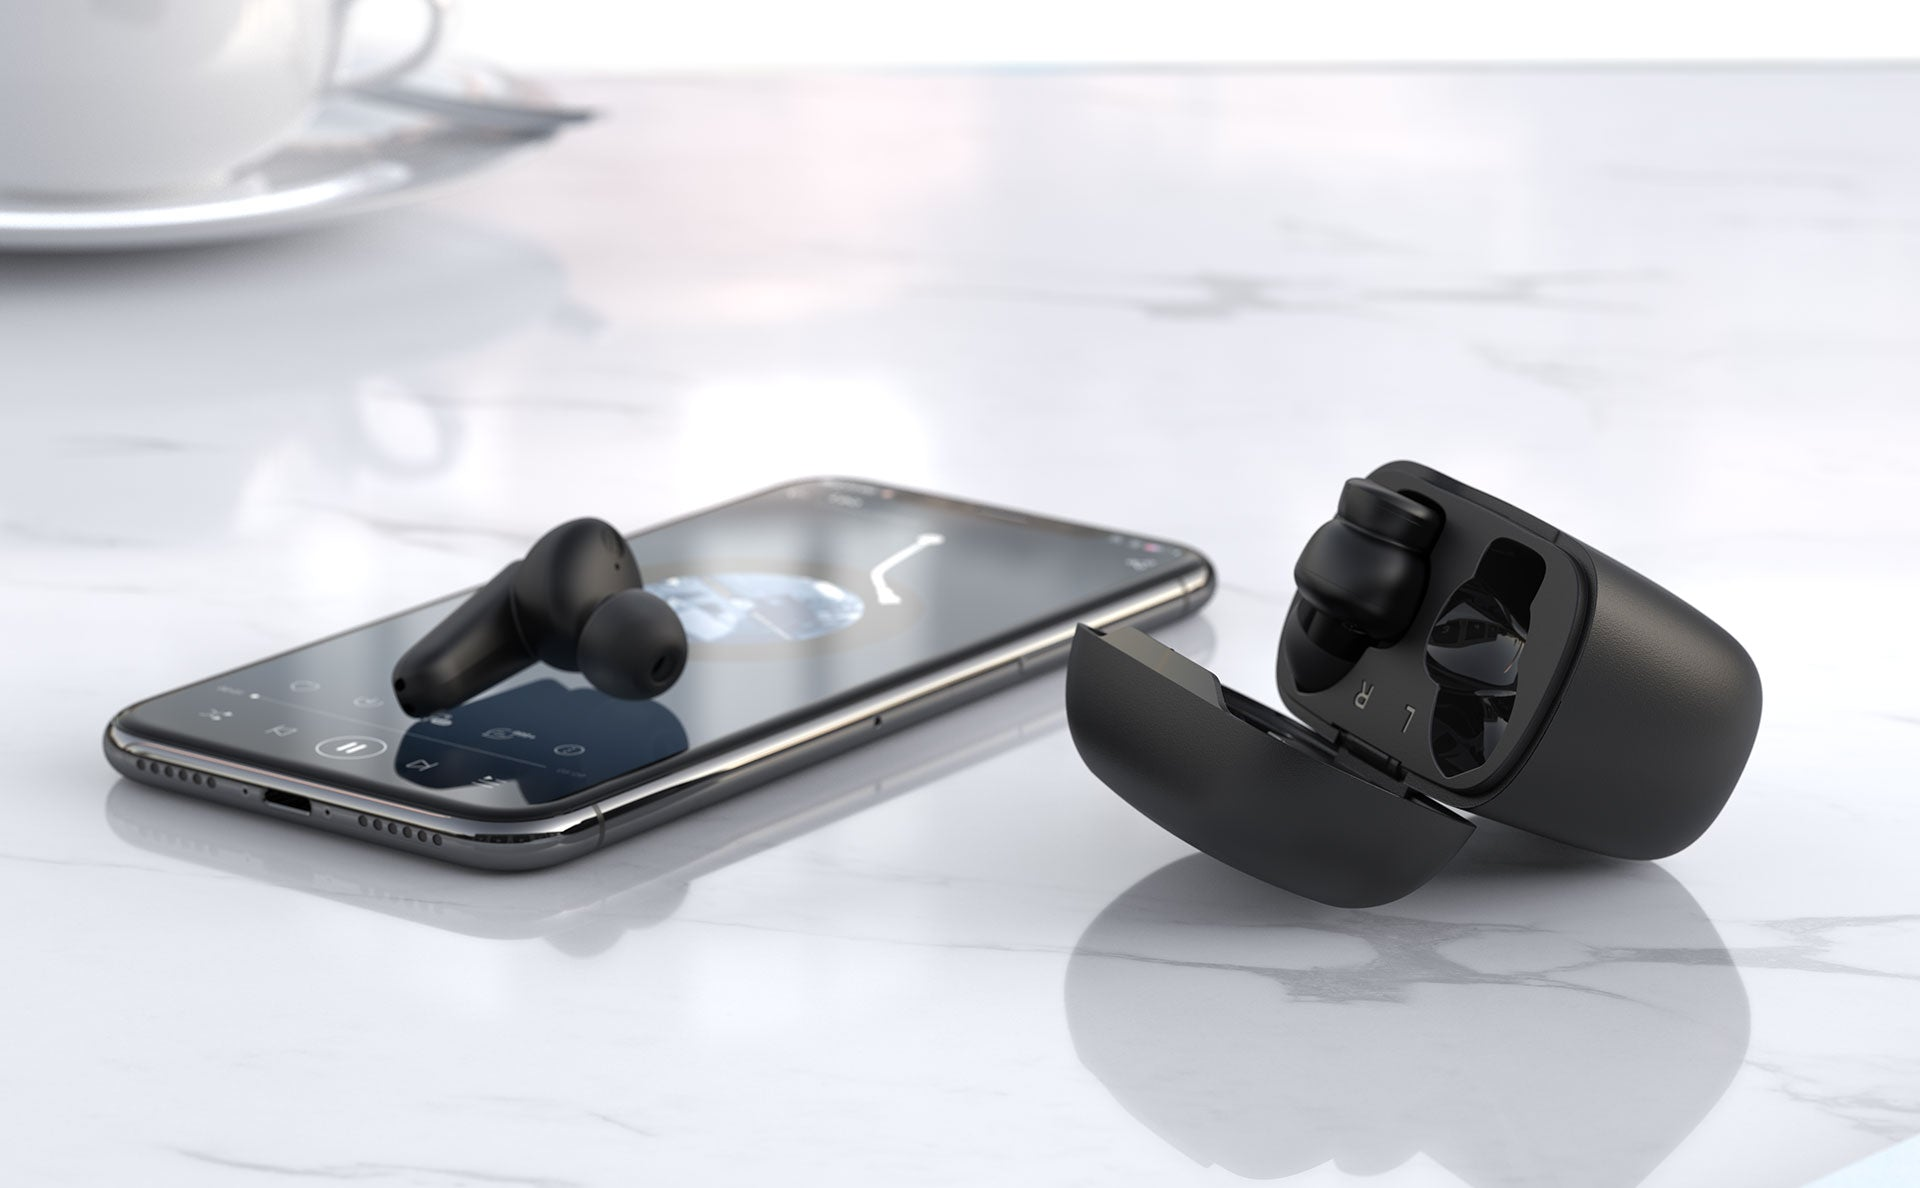 ENACFIRE H500 Wireless Earbuds